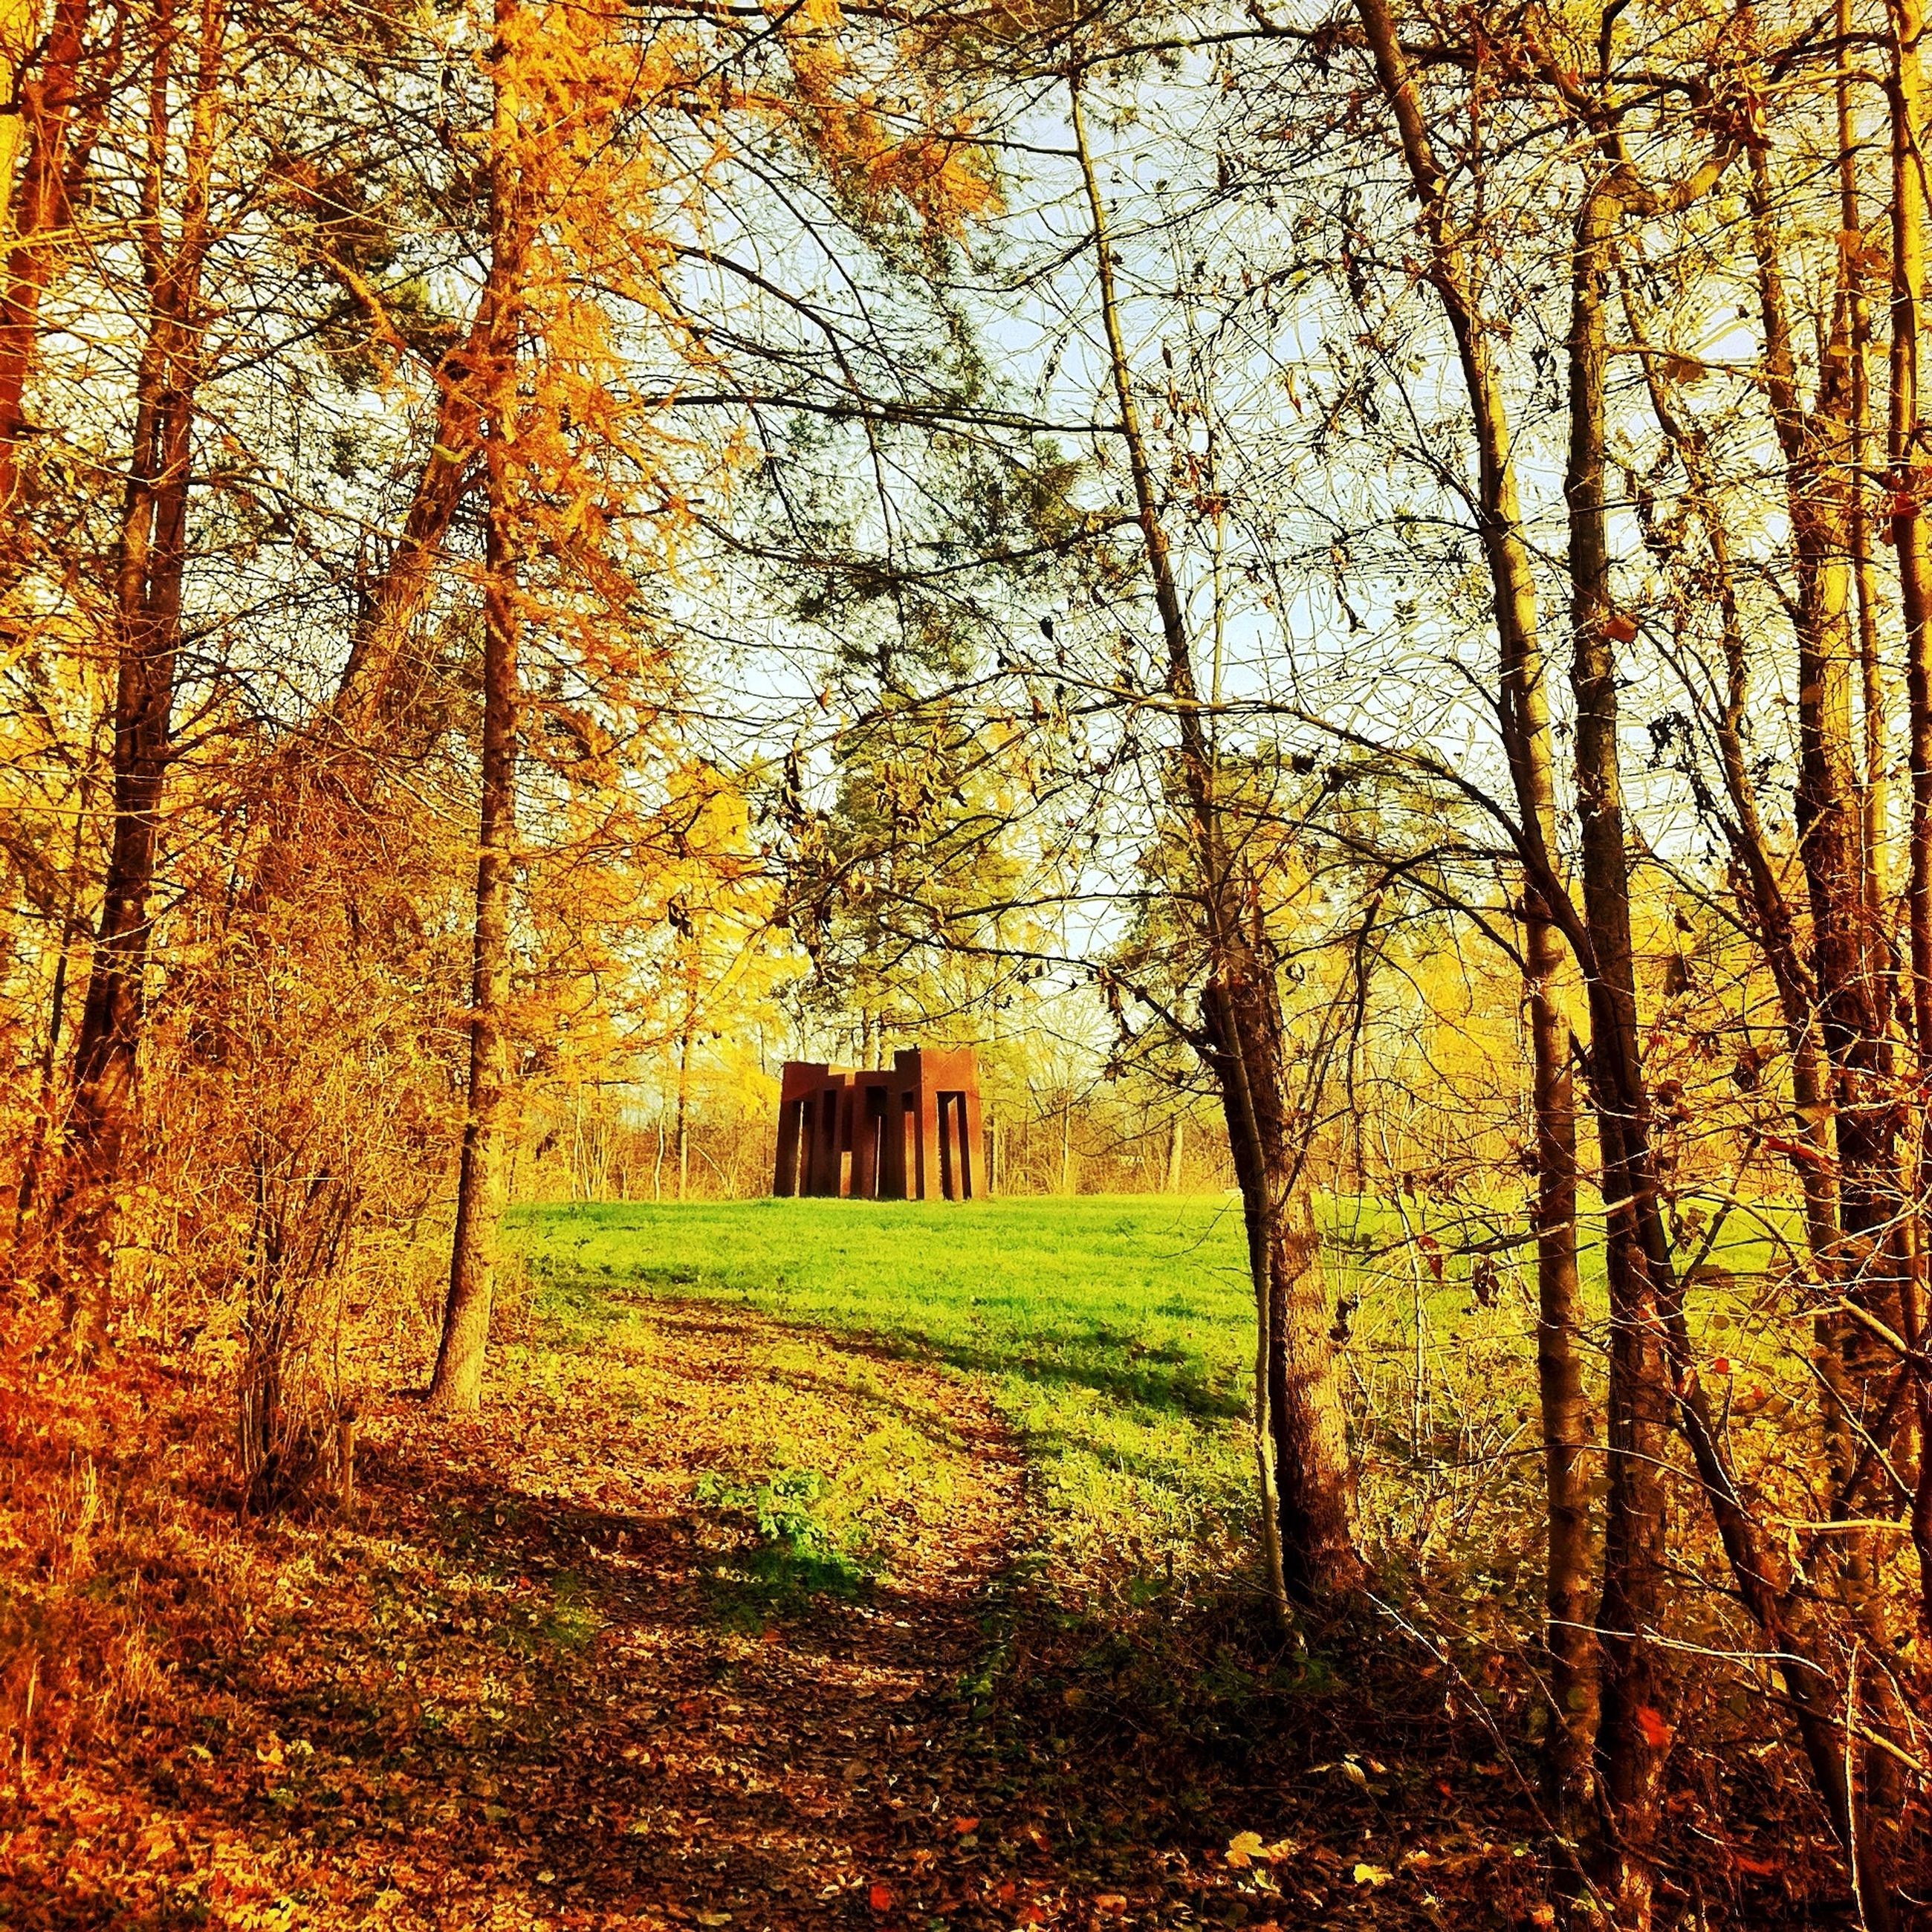 tree, built structure, architecture, autumn, building exterior, tree trunk, grass, tranquility, field, nature, growth, house, landscape, branch, tranquil scene, change, bare tree, beauty in nature, forest, scenics